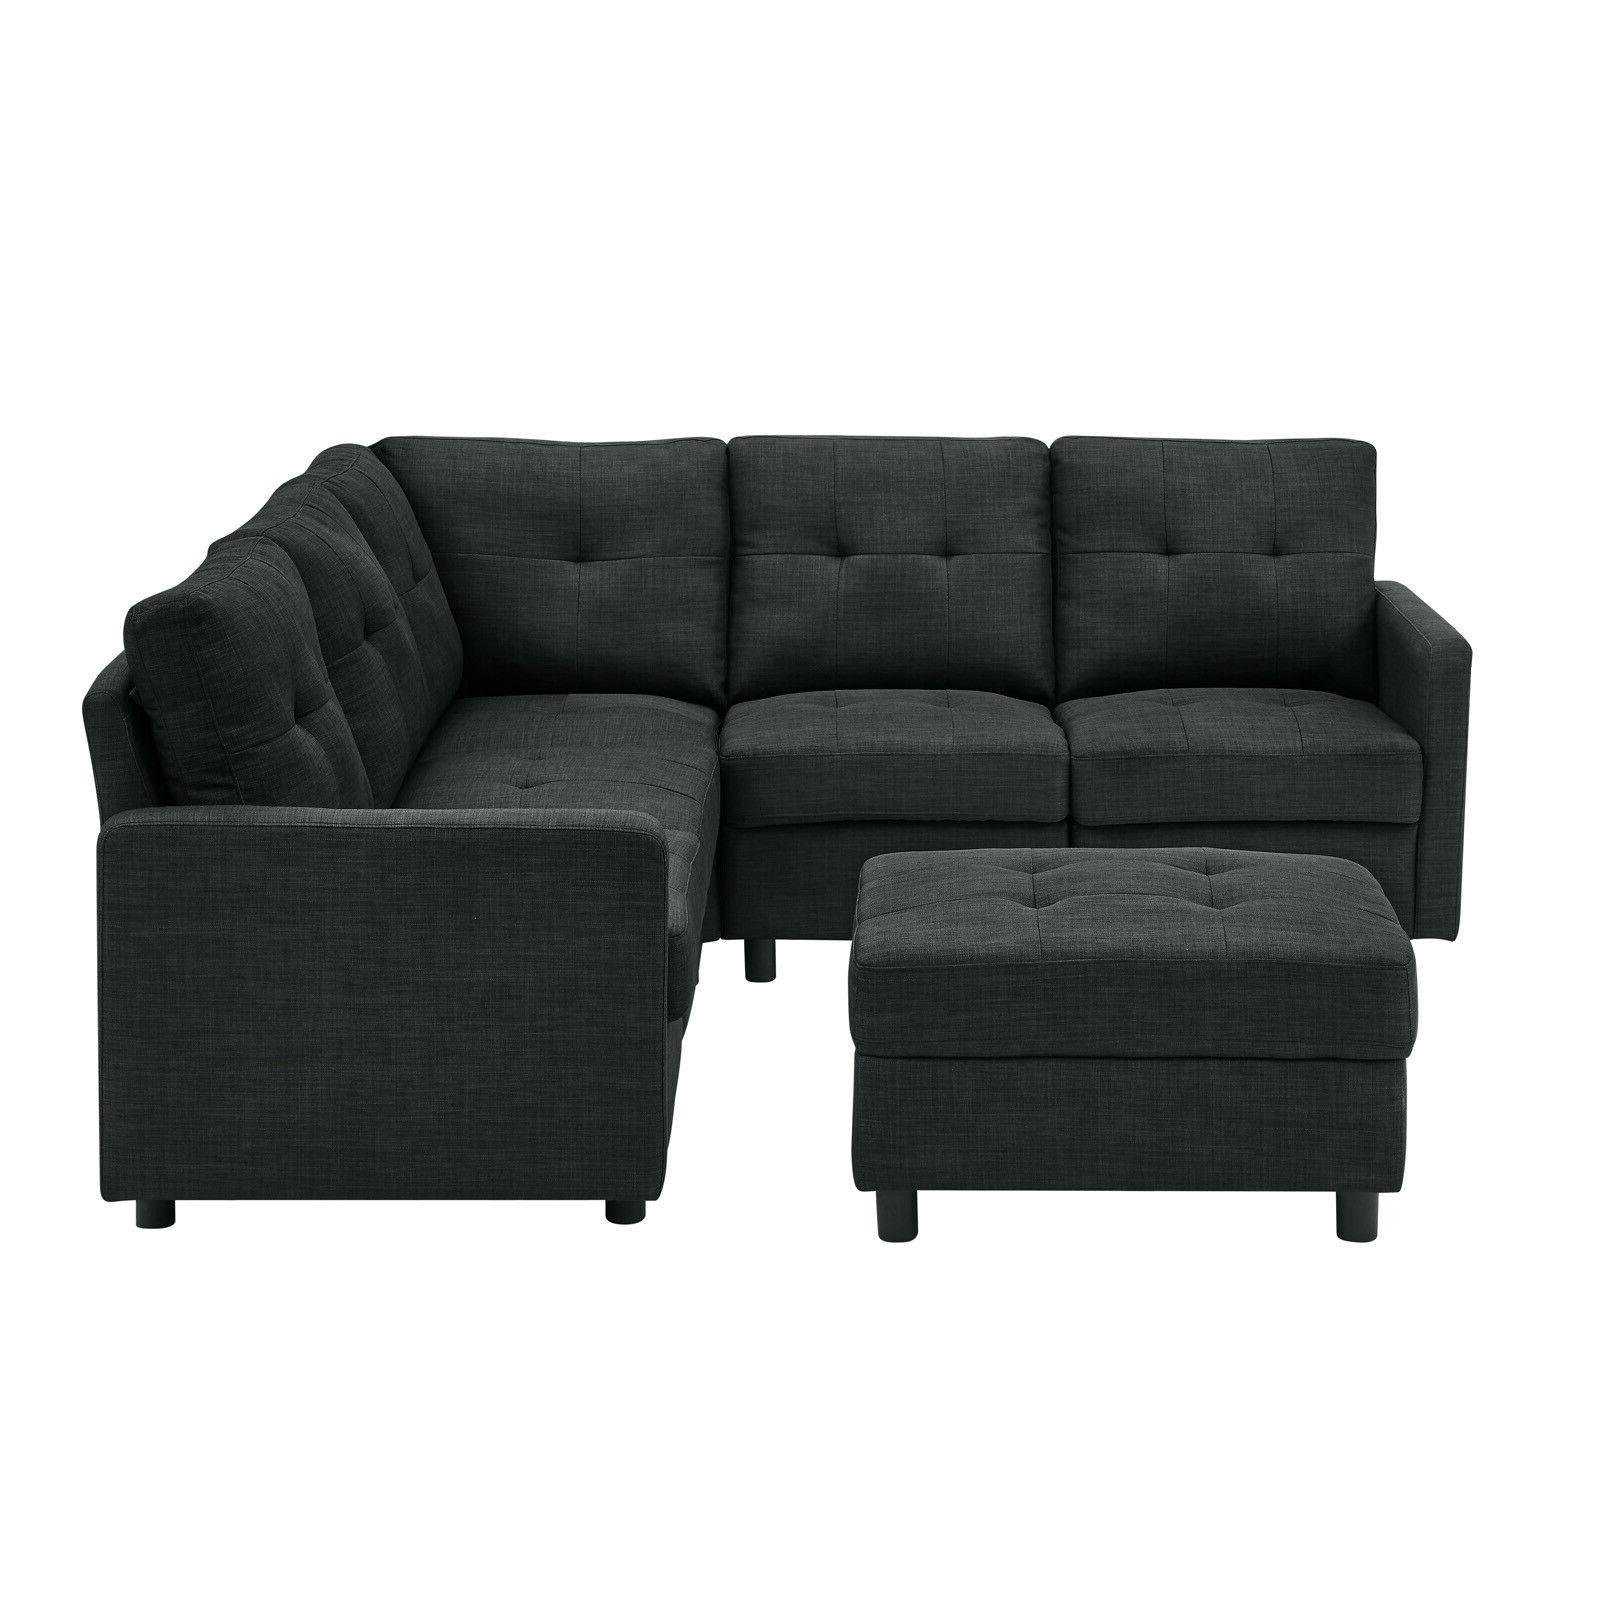 Sectional Linen Fabric Reversible Chaise L-Shaped Couch